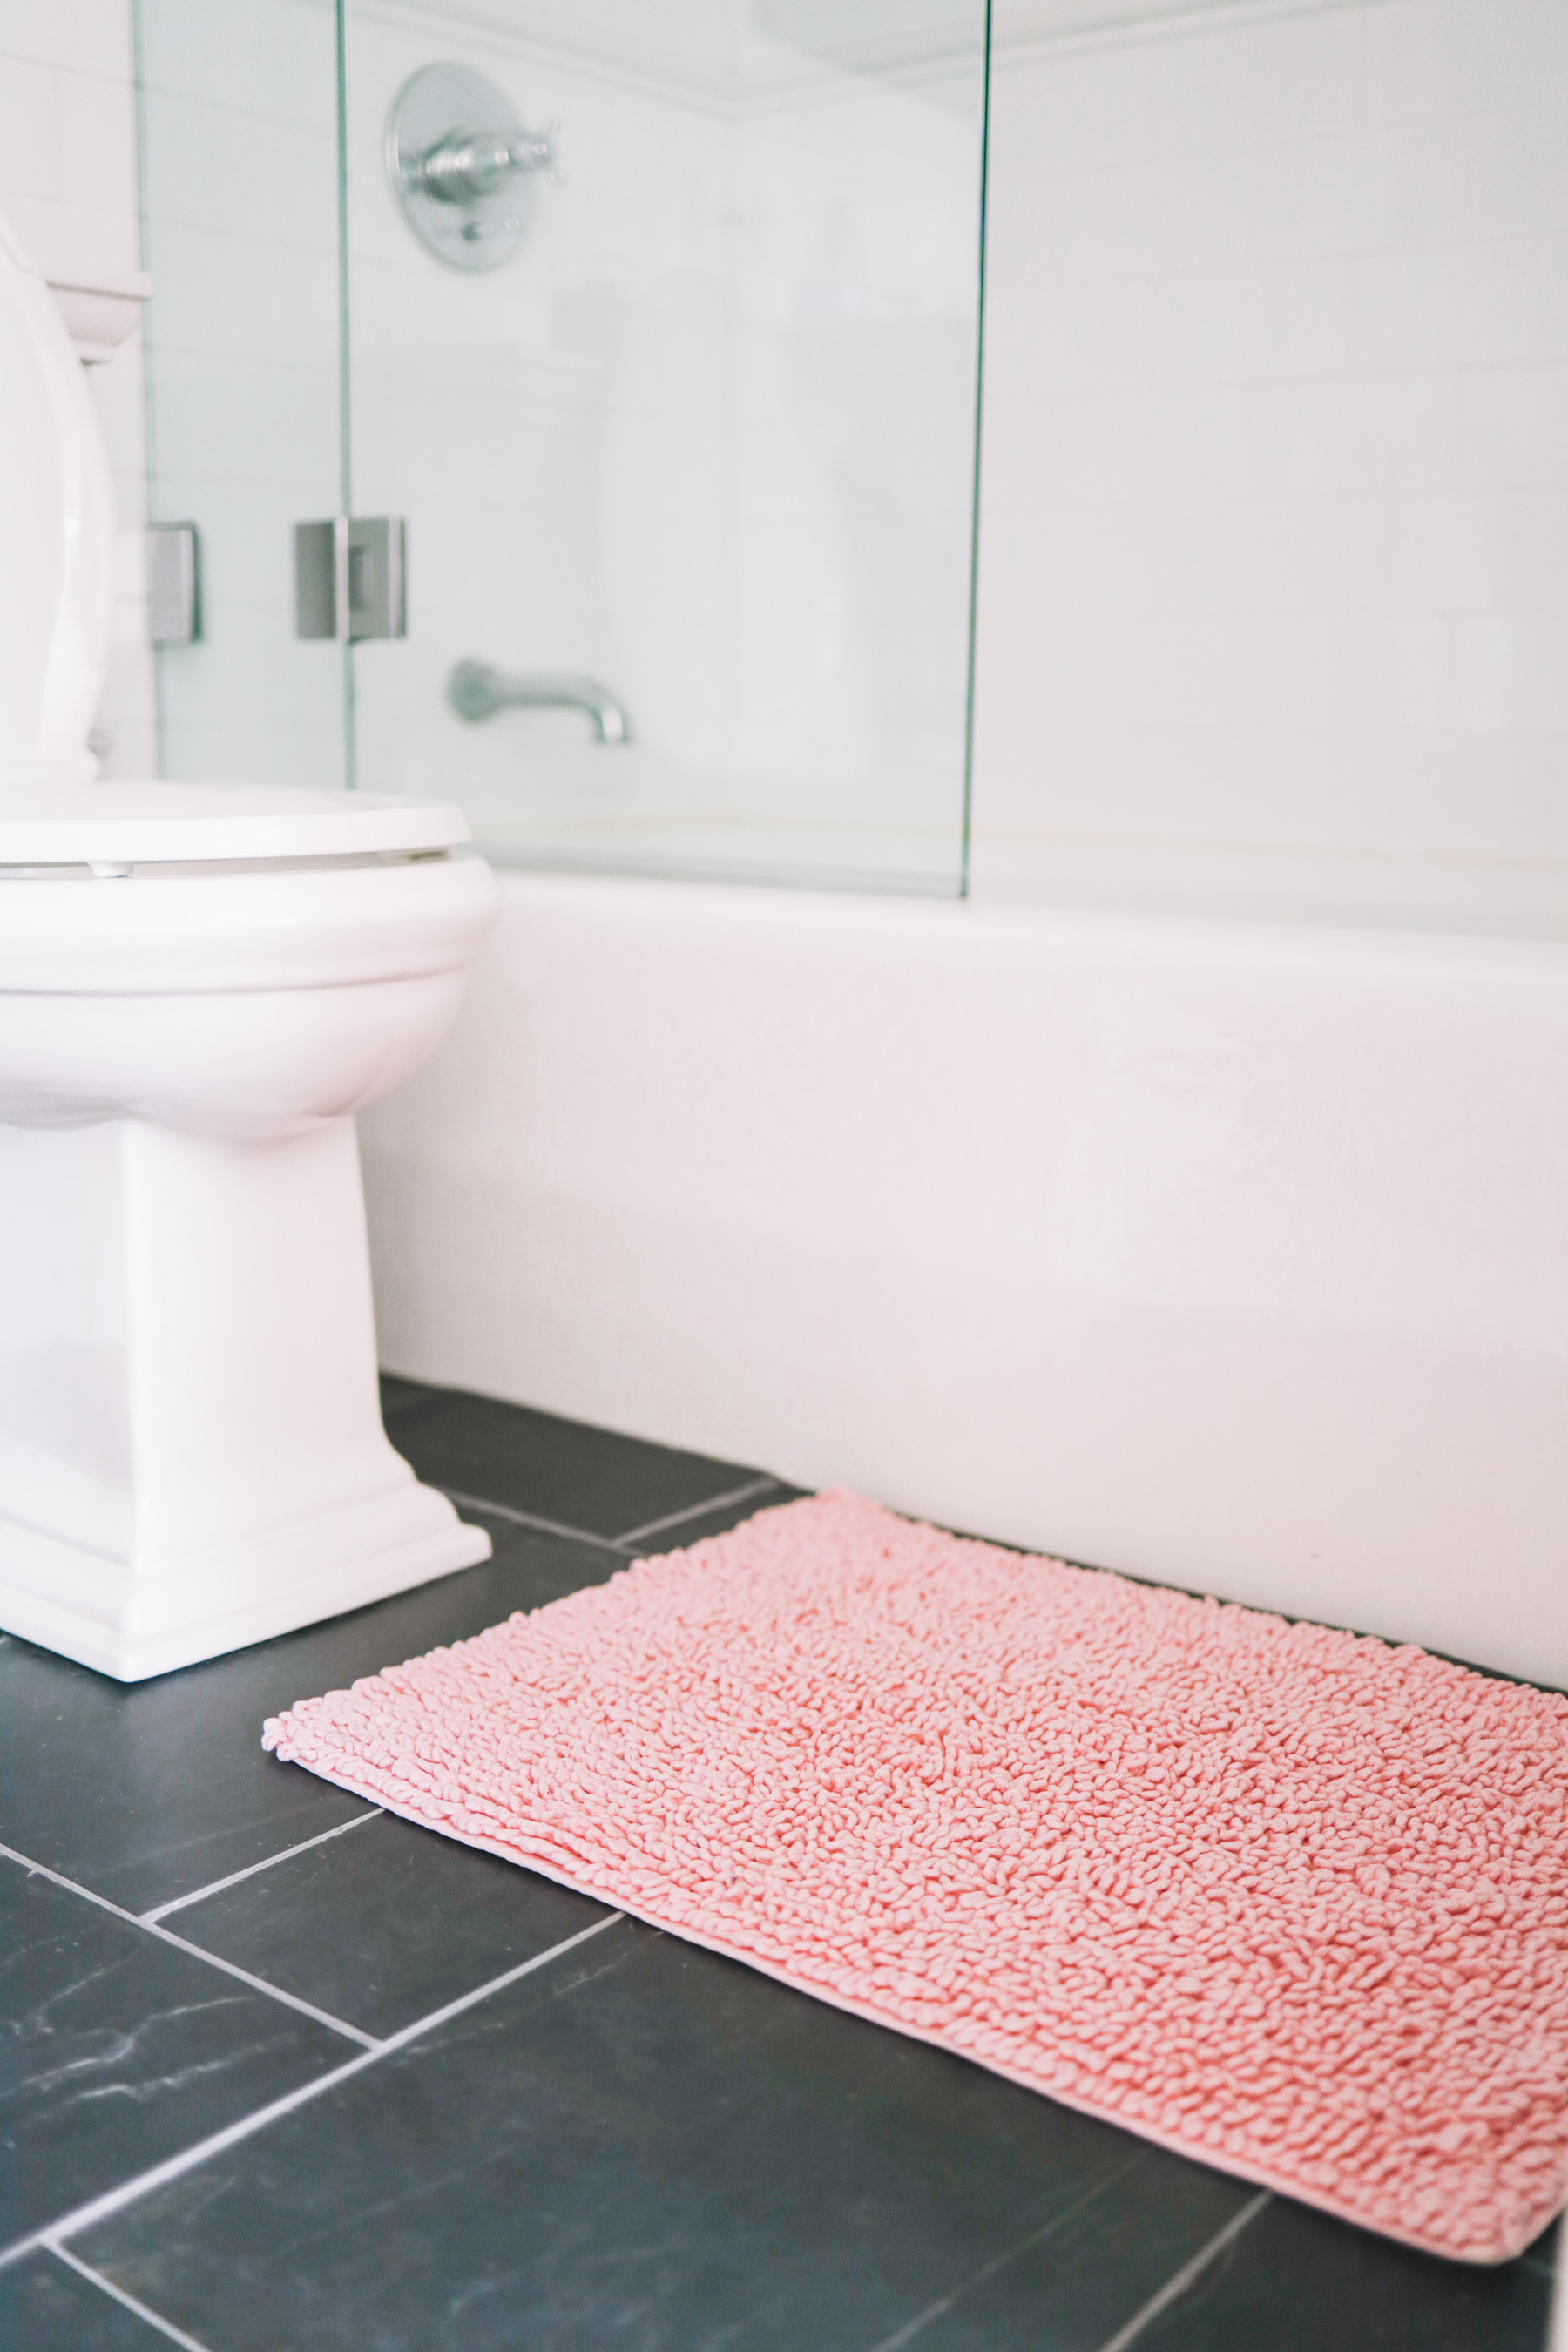 Preppy Girls Room - Pink bathmat contrasted by a black tiled floor and a white toilet and white bathtub